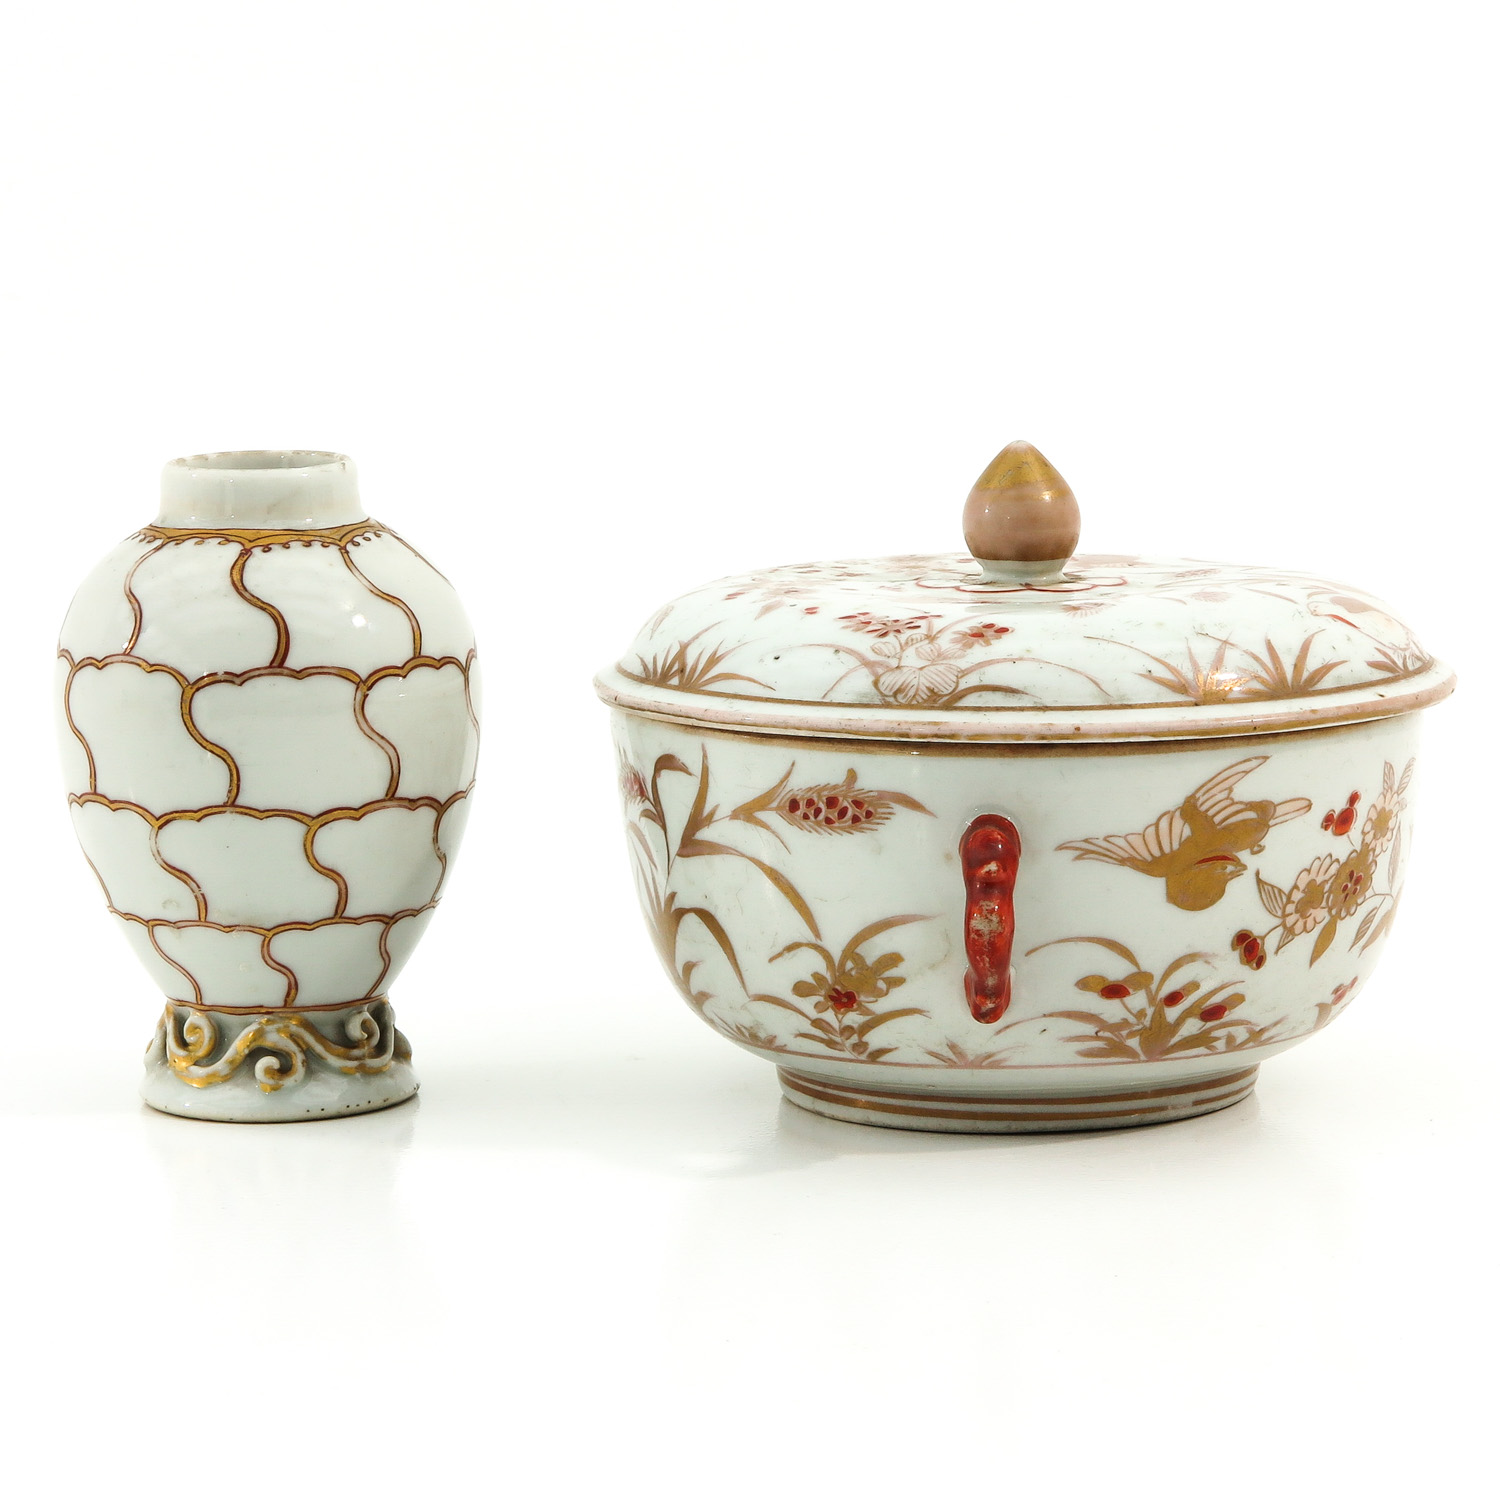 A Tea Box and Covered Dish - Image 4 of 9